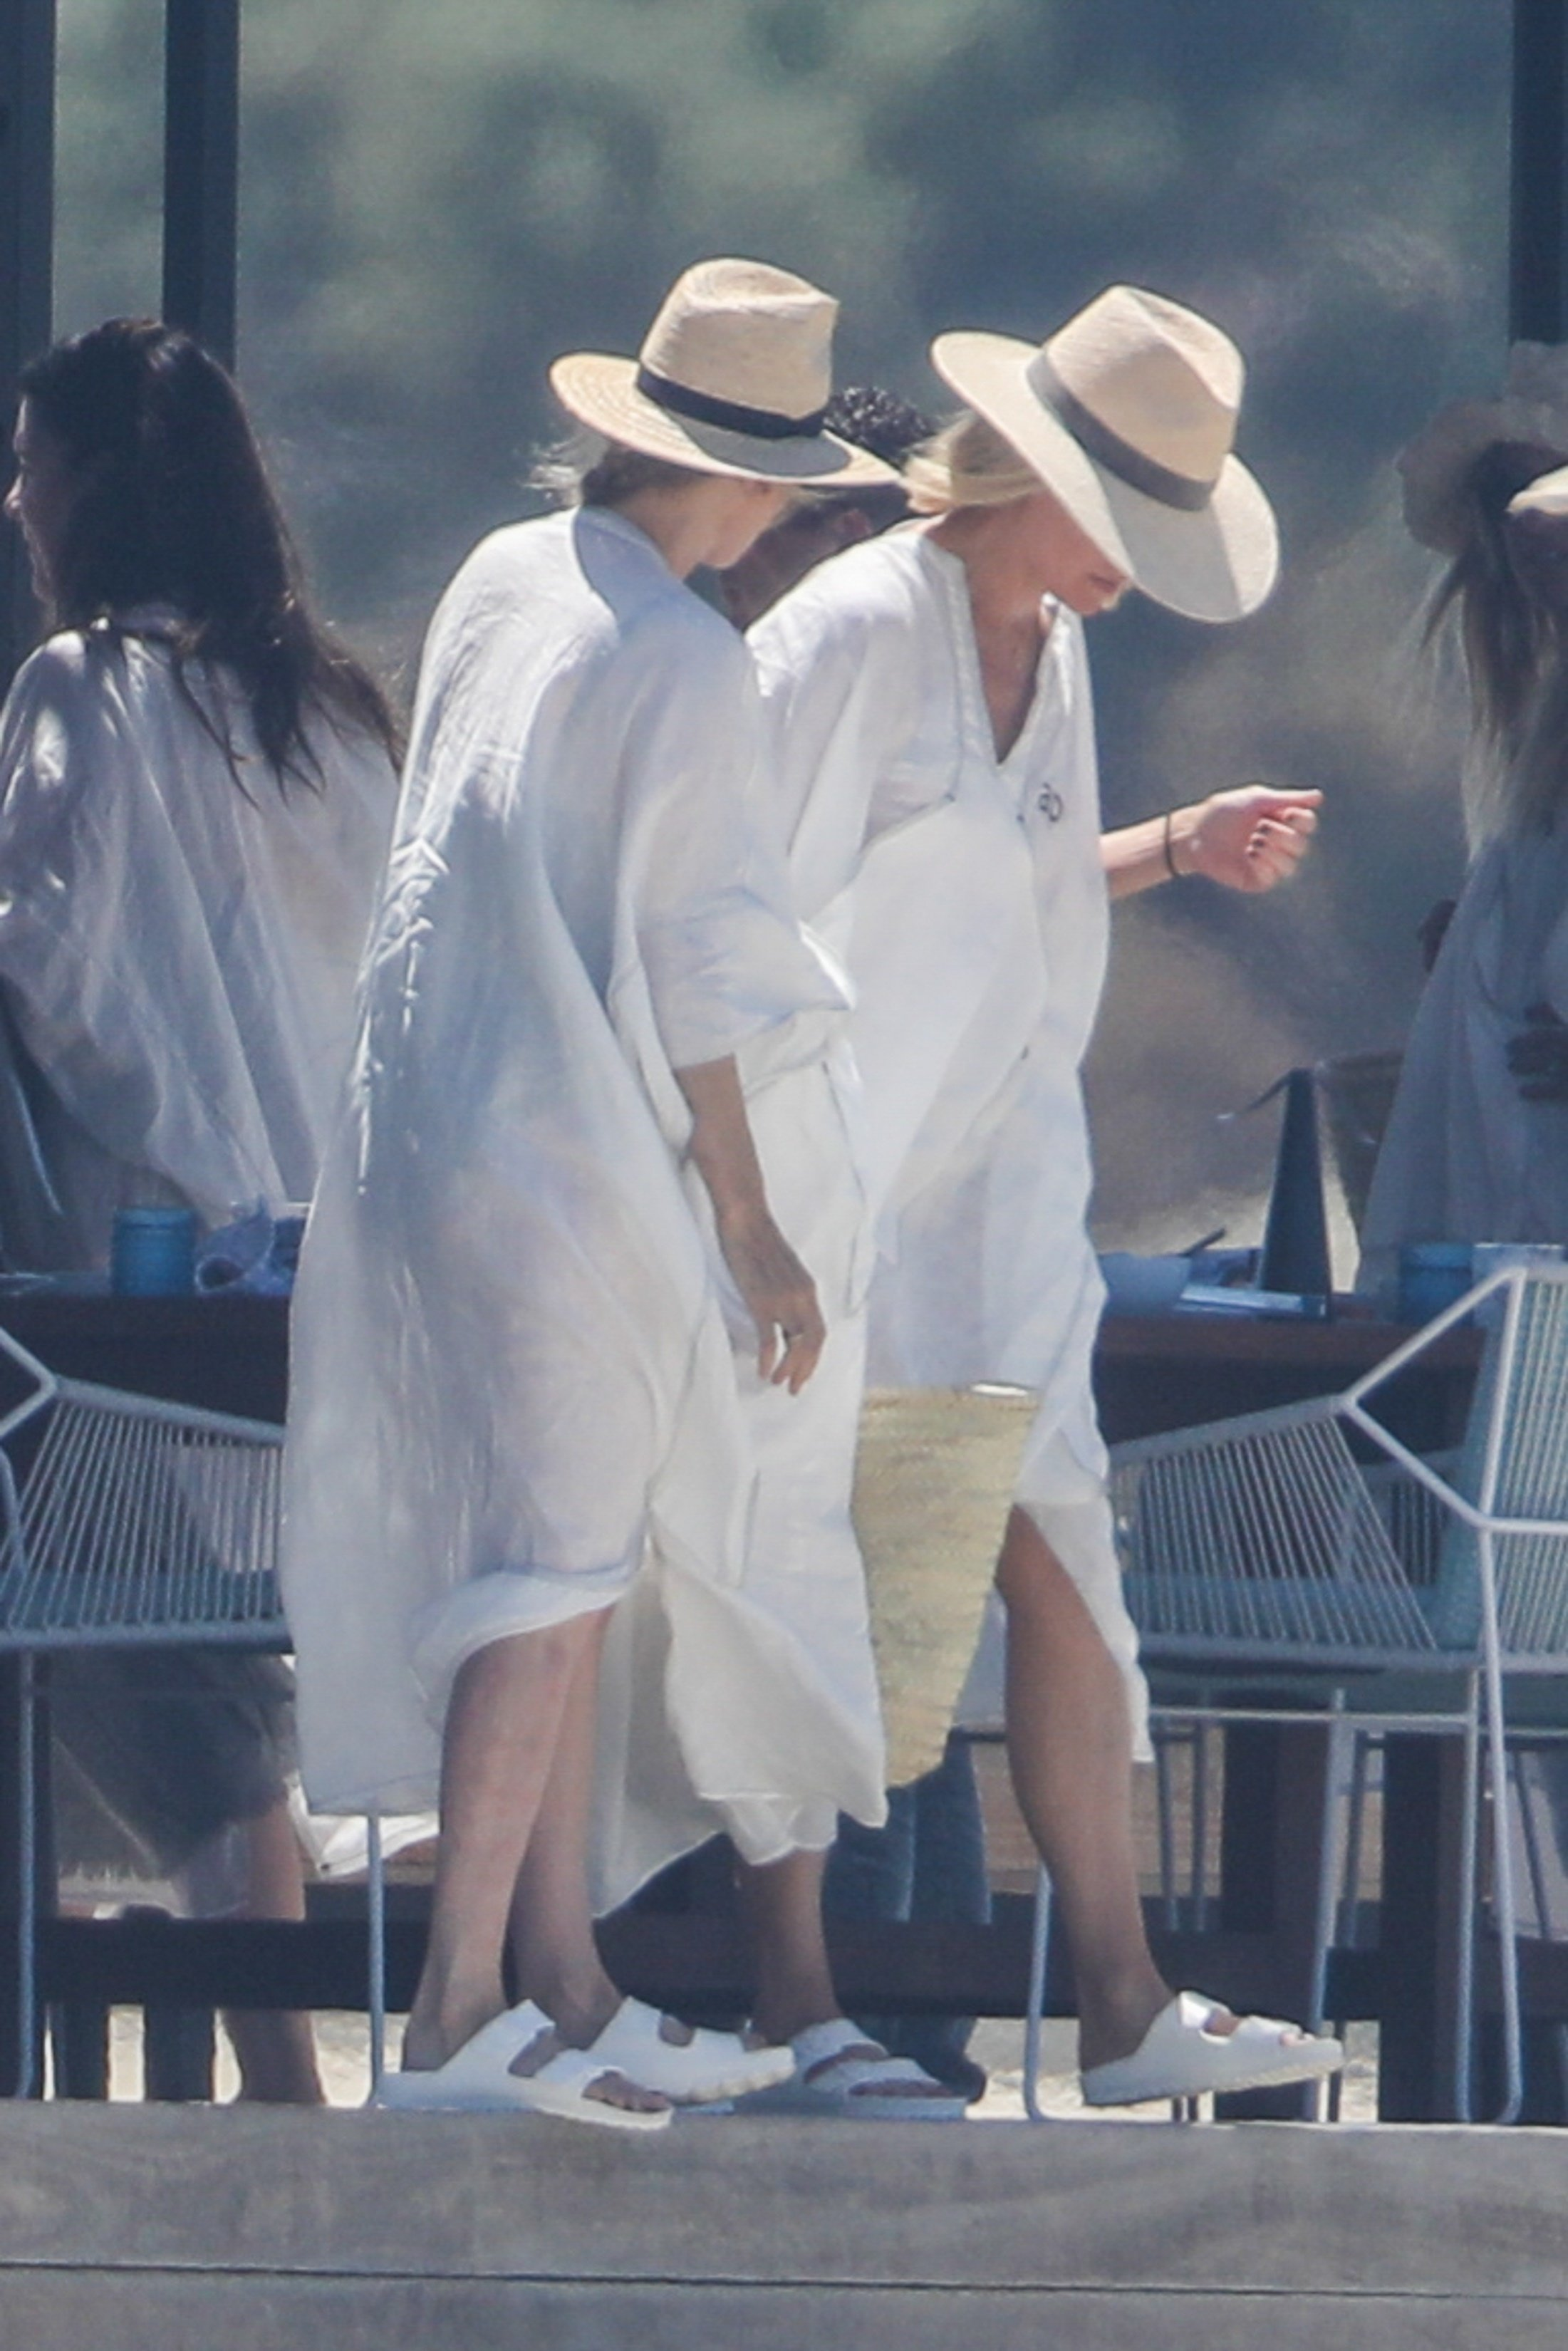 Cabo San Lucas, MEXICO  - *EXCLUSIVE*  - Gwyneth Paltrow is ready for one last fling before the ring! The blonde star Gwyneth Paltrow and good friend, fashion designer Stella McCartney, were spotted sipping on Champagne and soaking up the Sun in Cabo San Lucas with friends during a girls only bachelorette party.  Pictured: Gwyneth Paltrow, Stella McCartney  BACKGRID USA 13 APRIL 2018, Image: 368458750, License: Rights-managed, Restrictions: , Model Release: no, Credit line: Profimedia, AKM-GSI